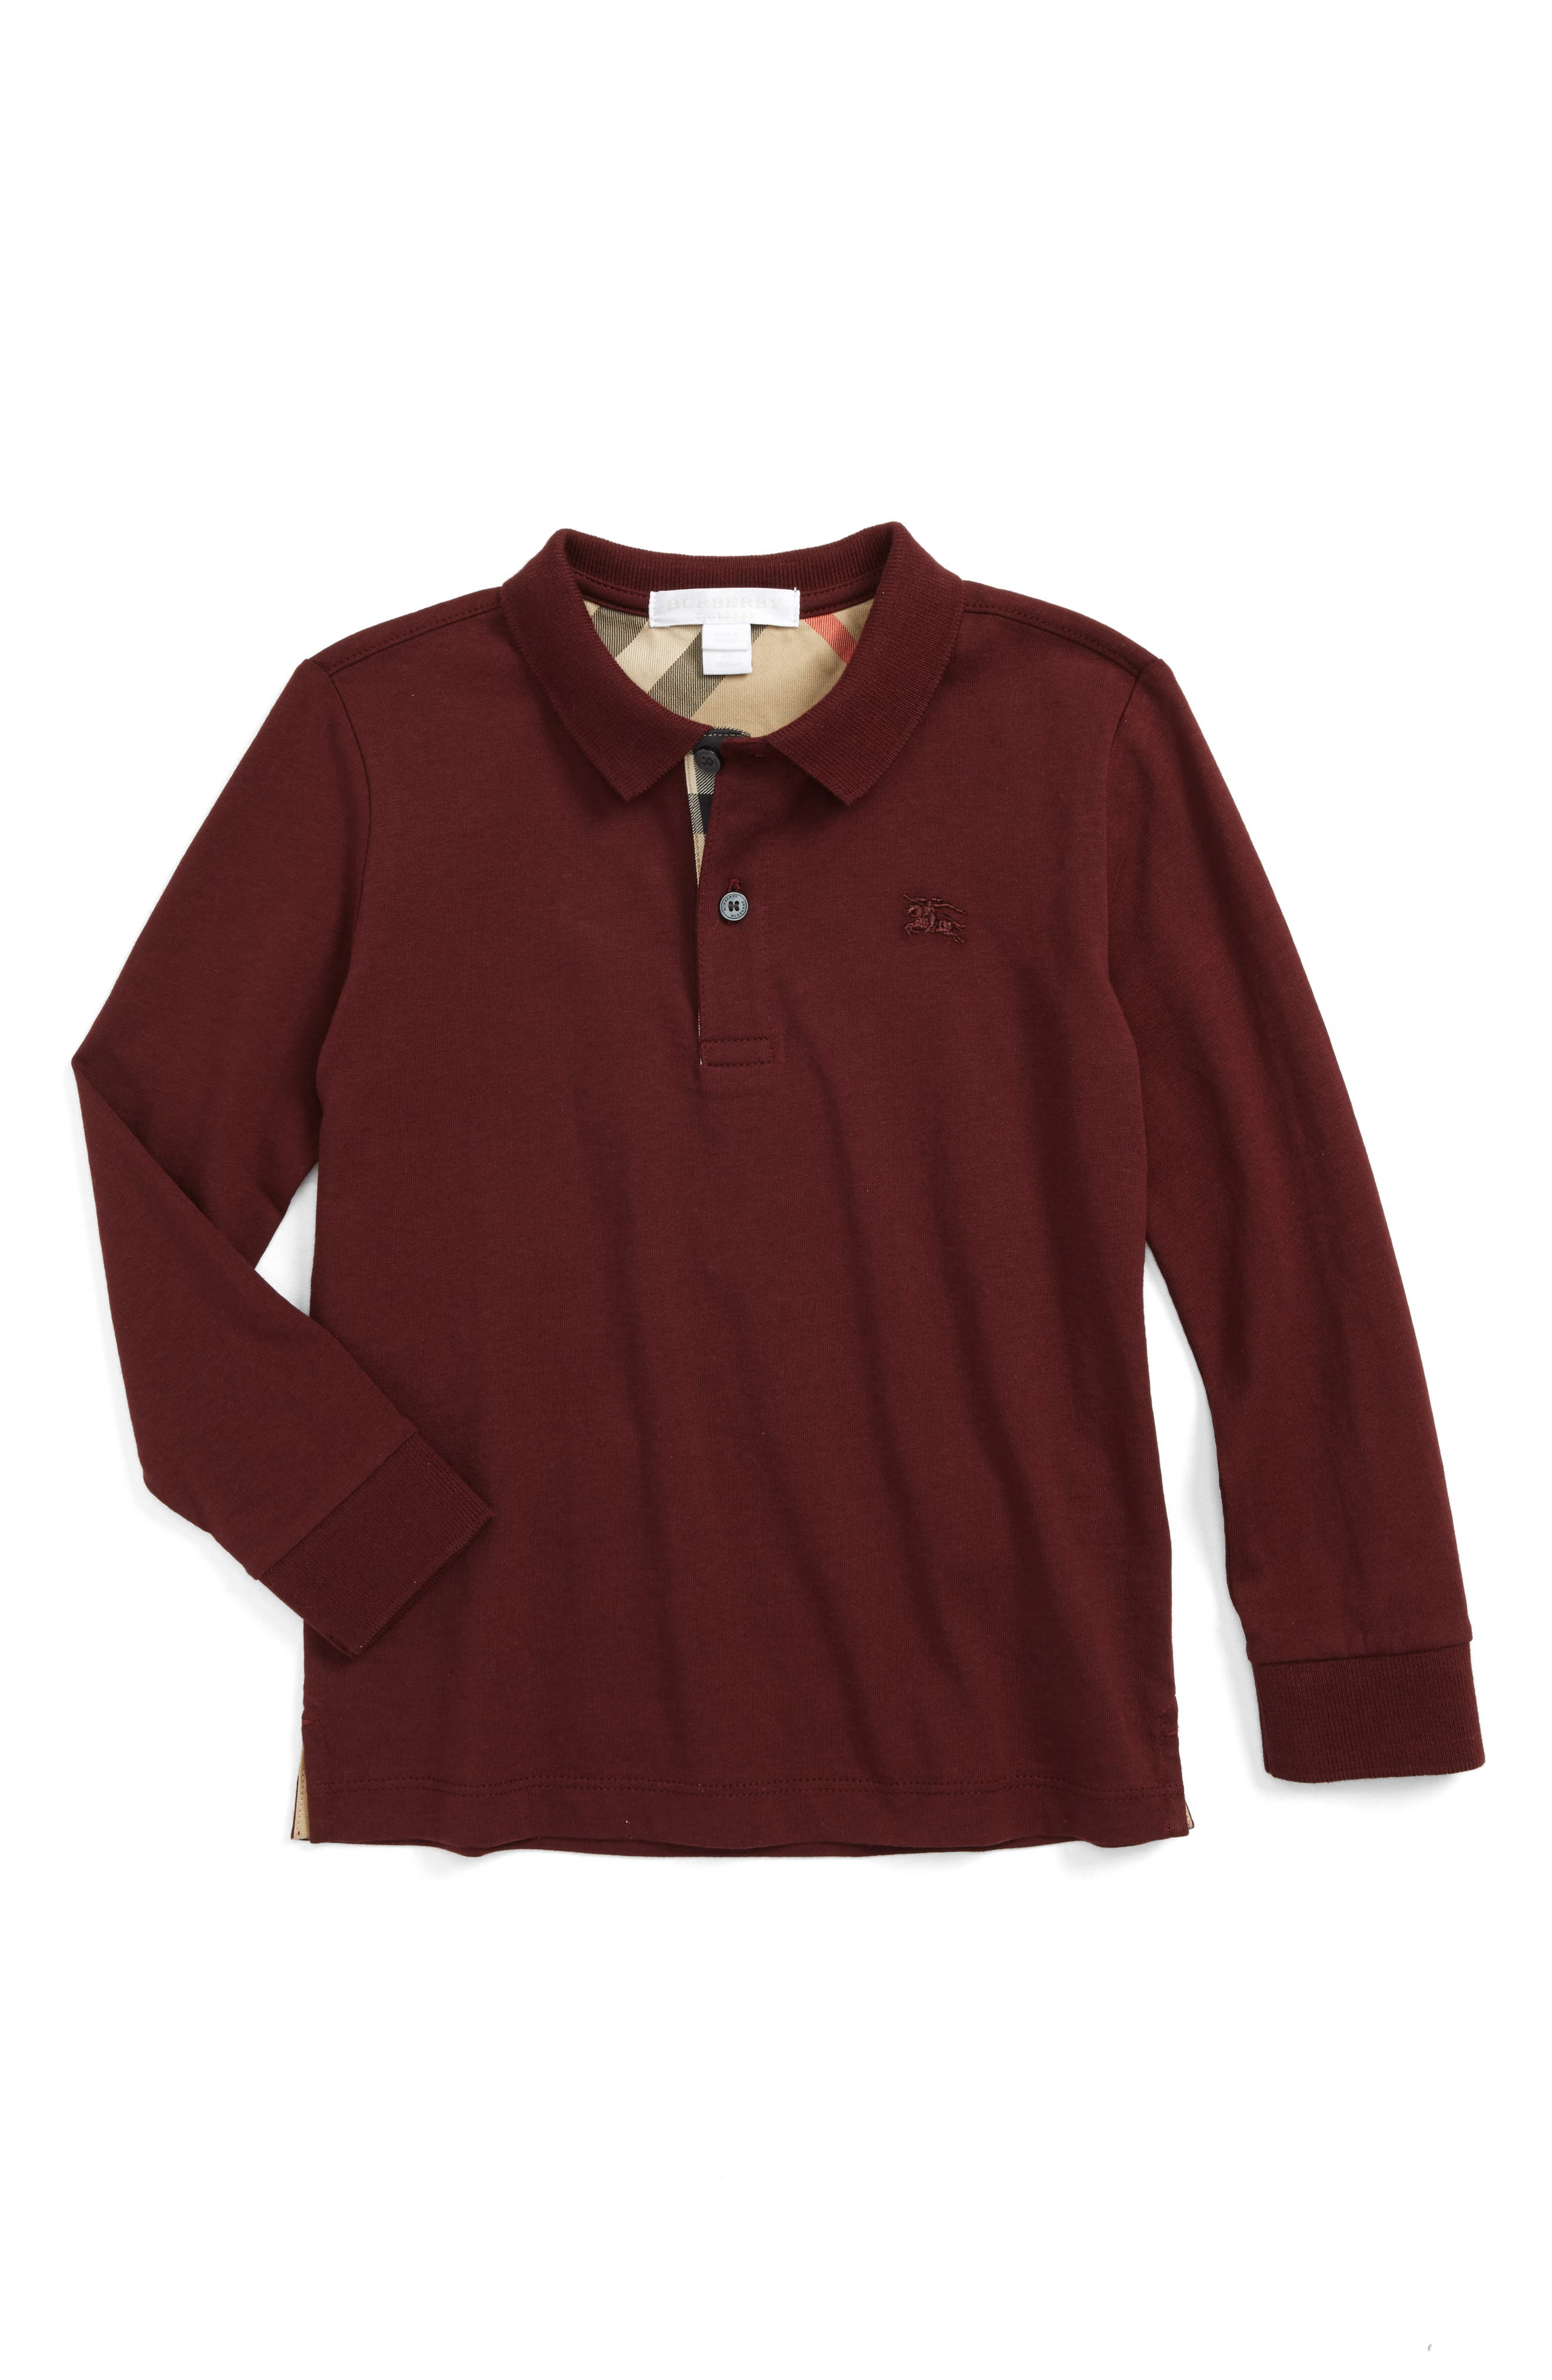 Alternate Image 1 Selected - Burberry 'Mini' Long Sleeve Polo Shirt (Little Boys & Big Boys)